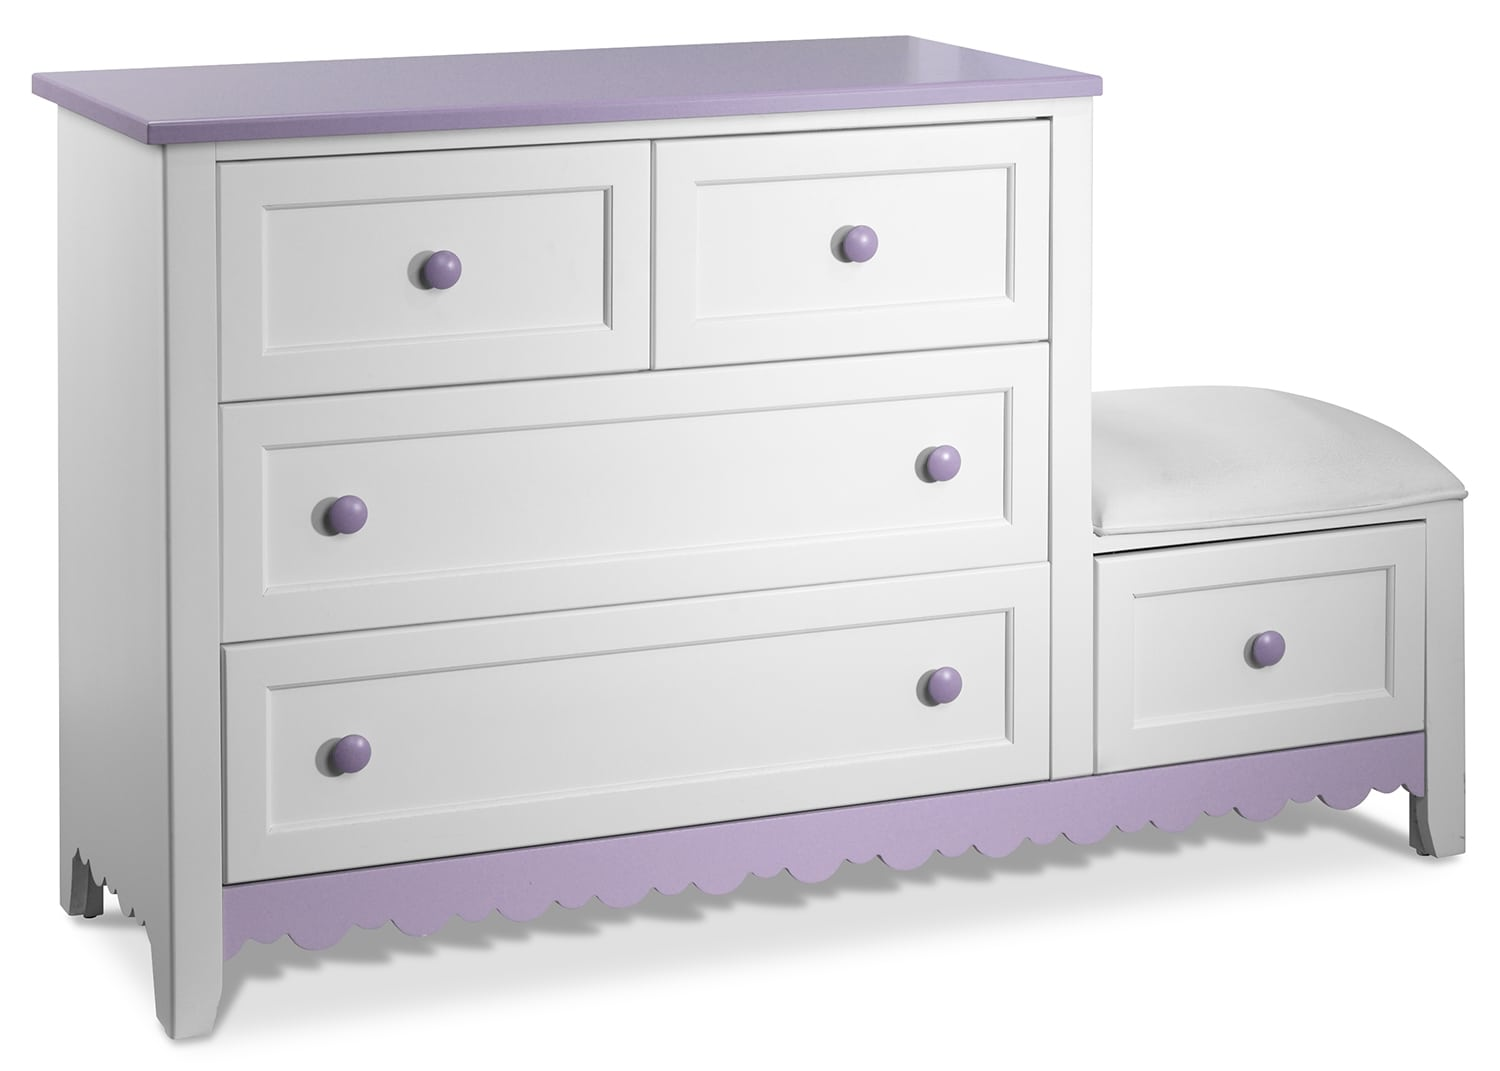 Sweetdreams Dresser - White and Lavender